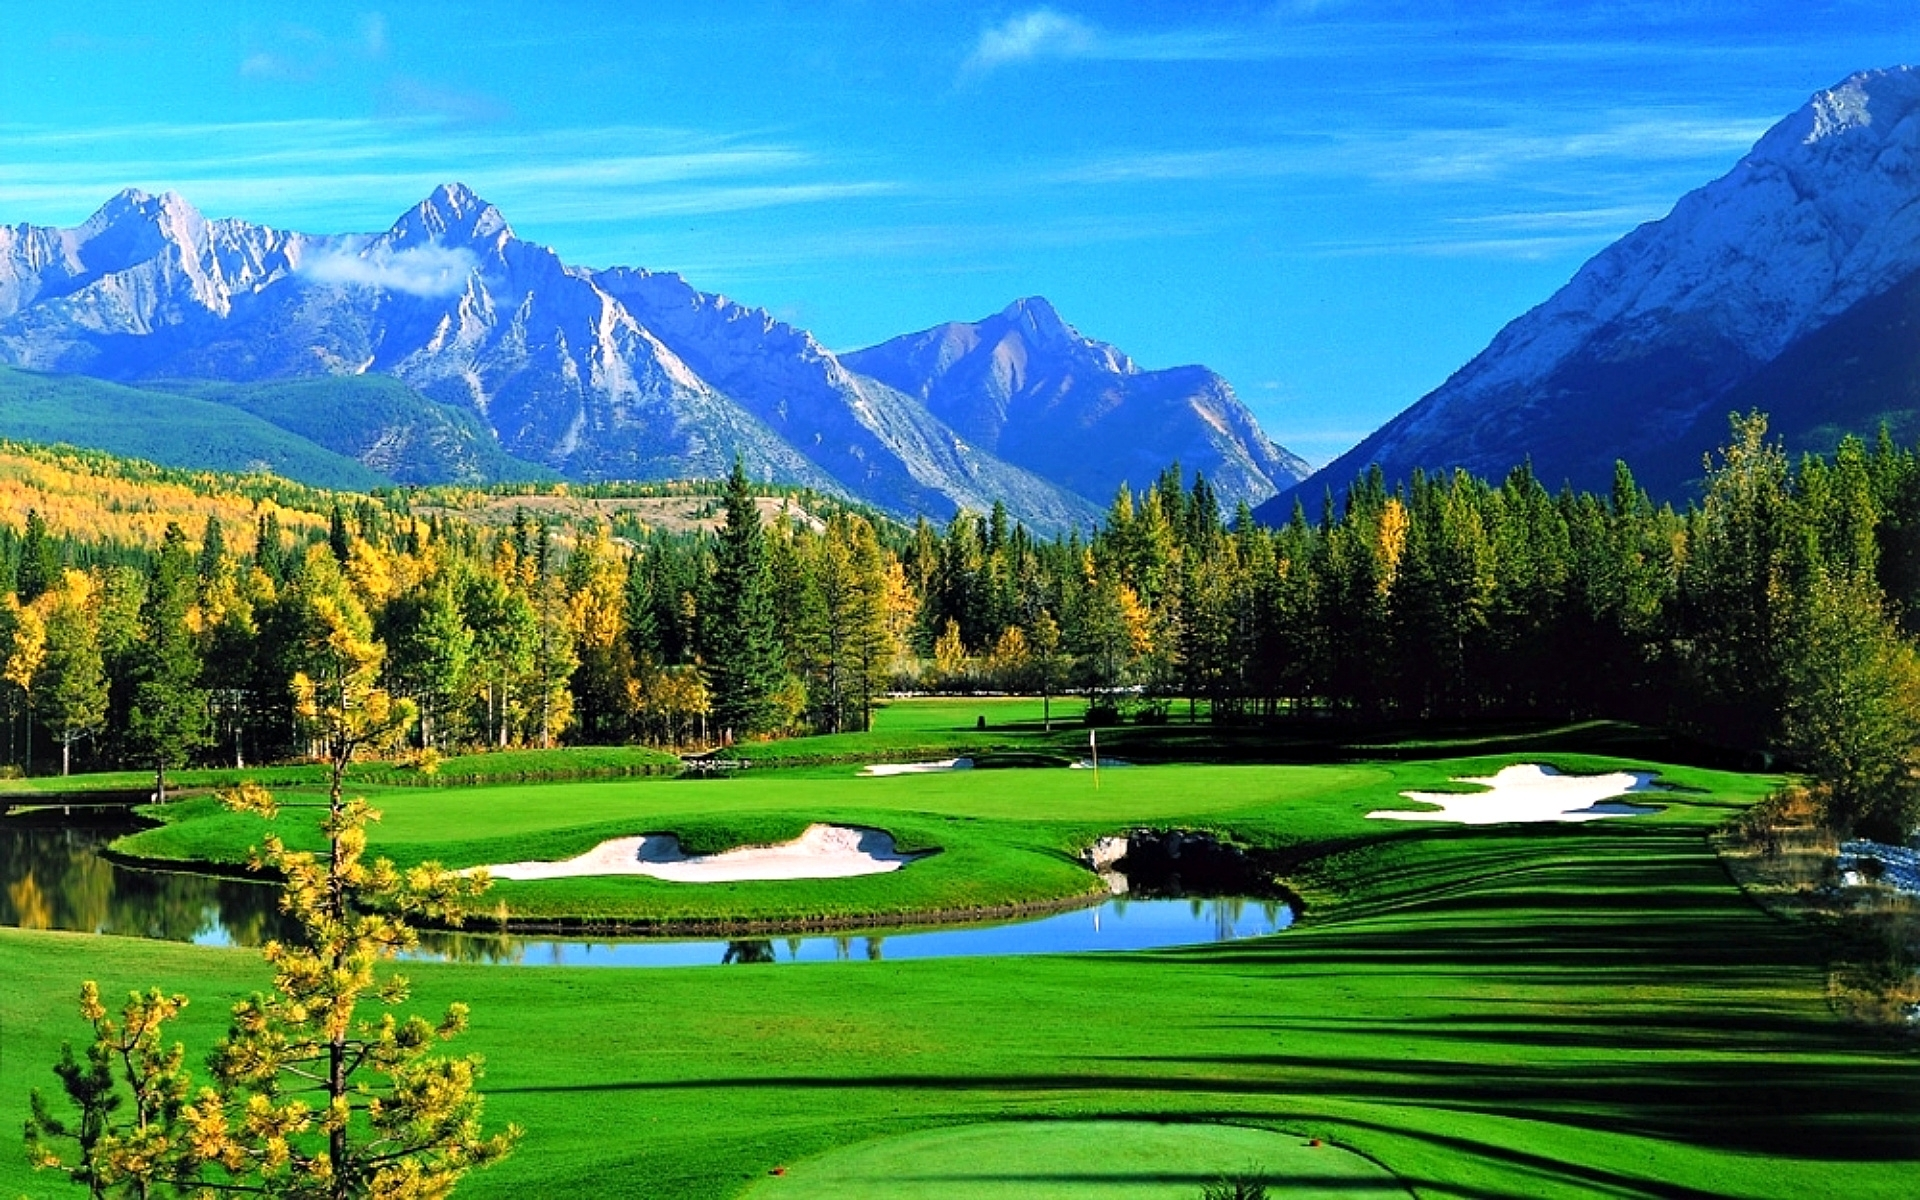 golf course backgrounds group (72+)